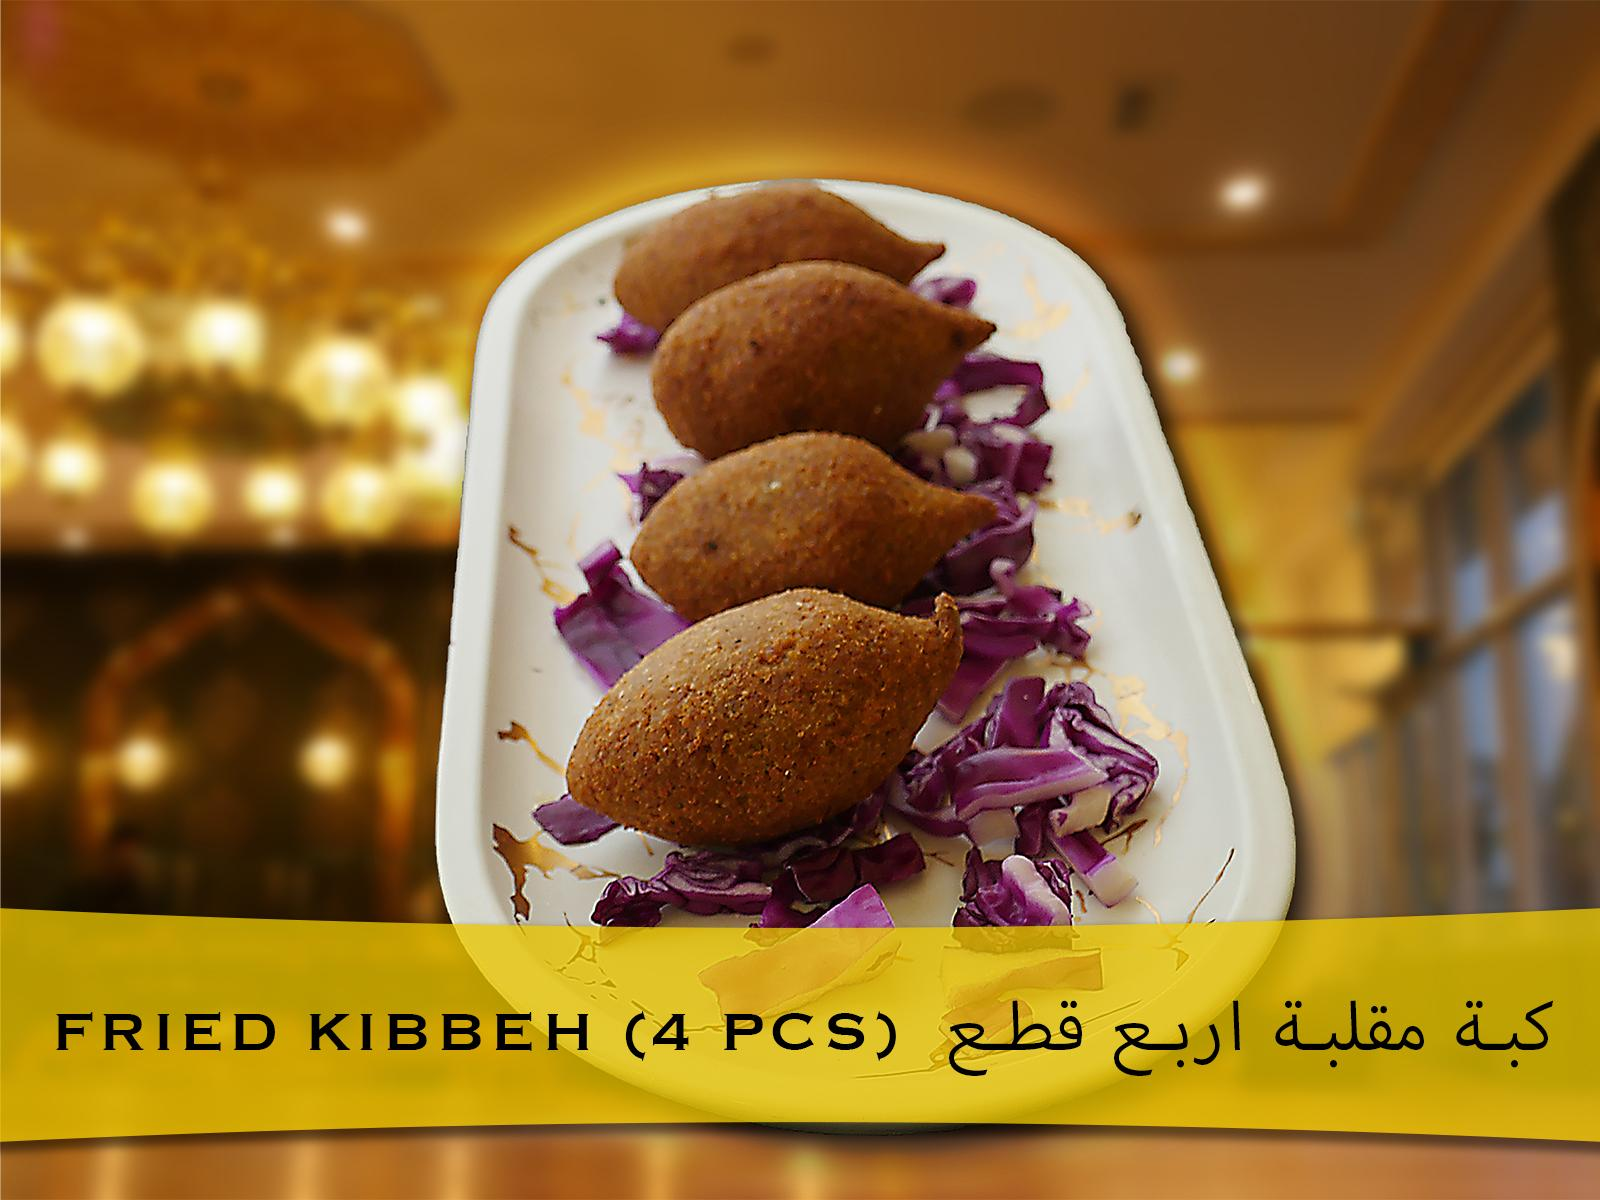 Fried Kibbeh Image